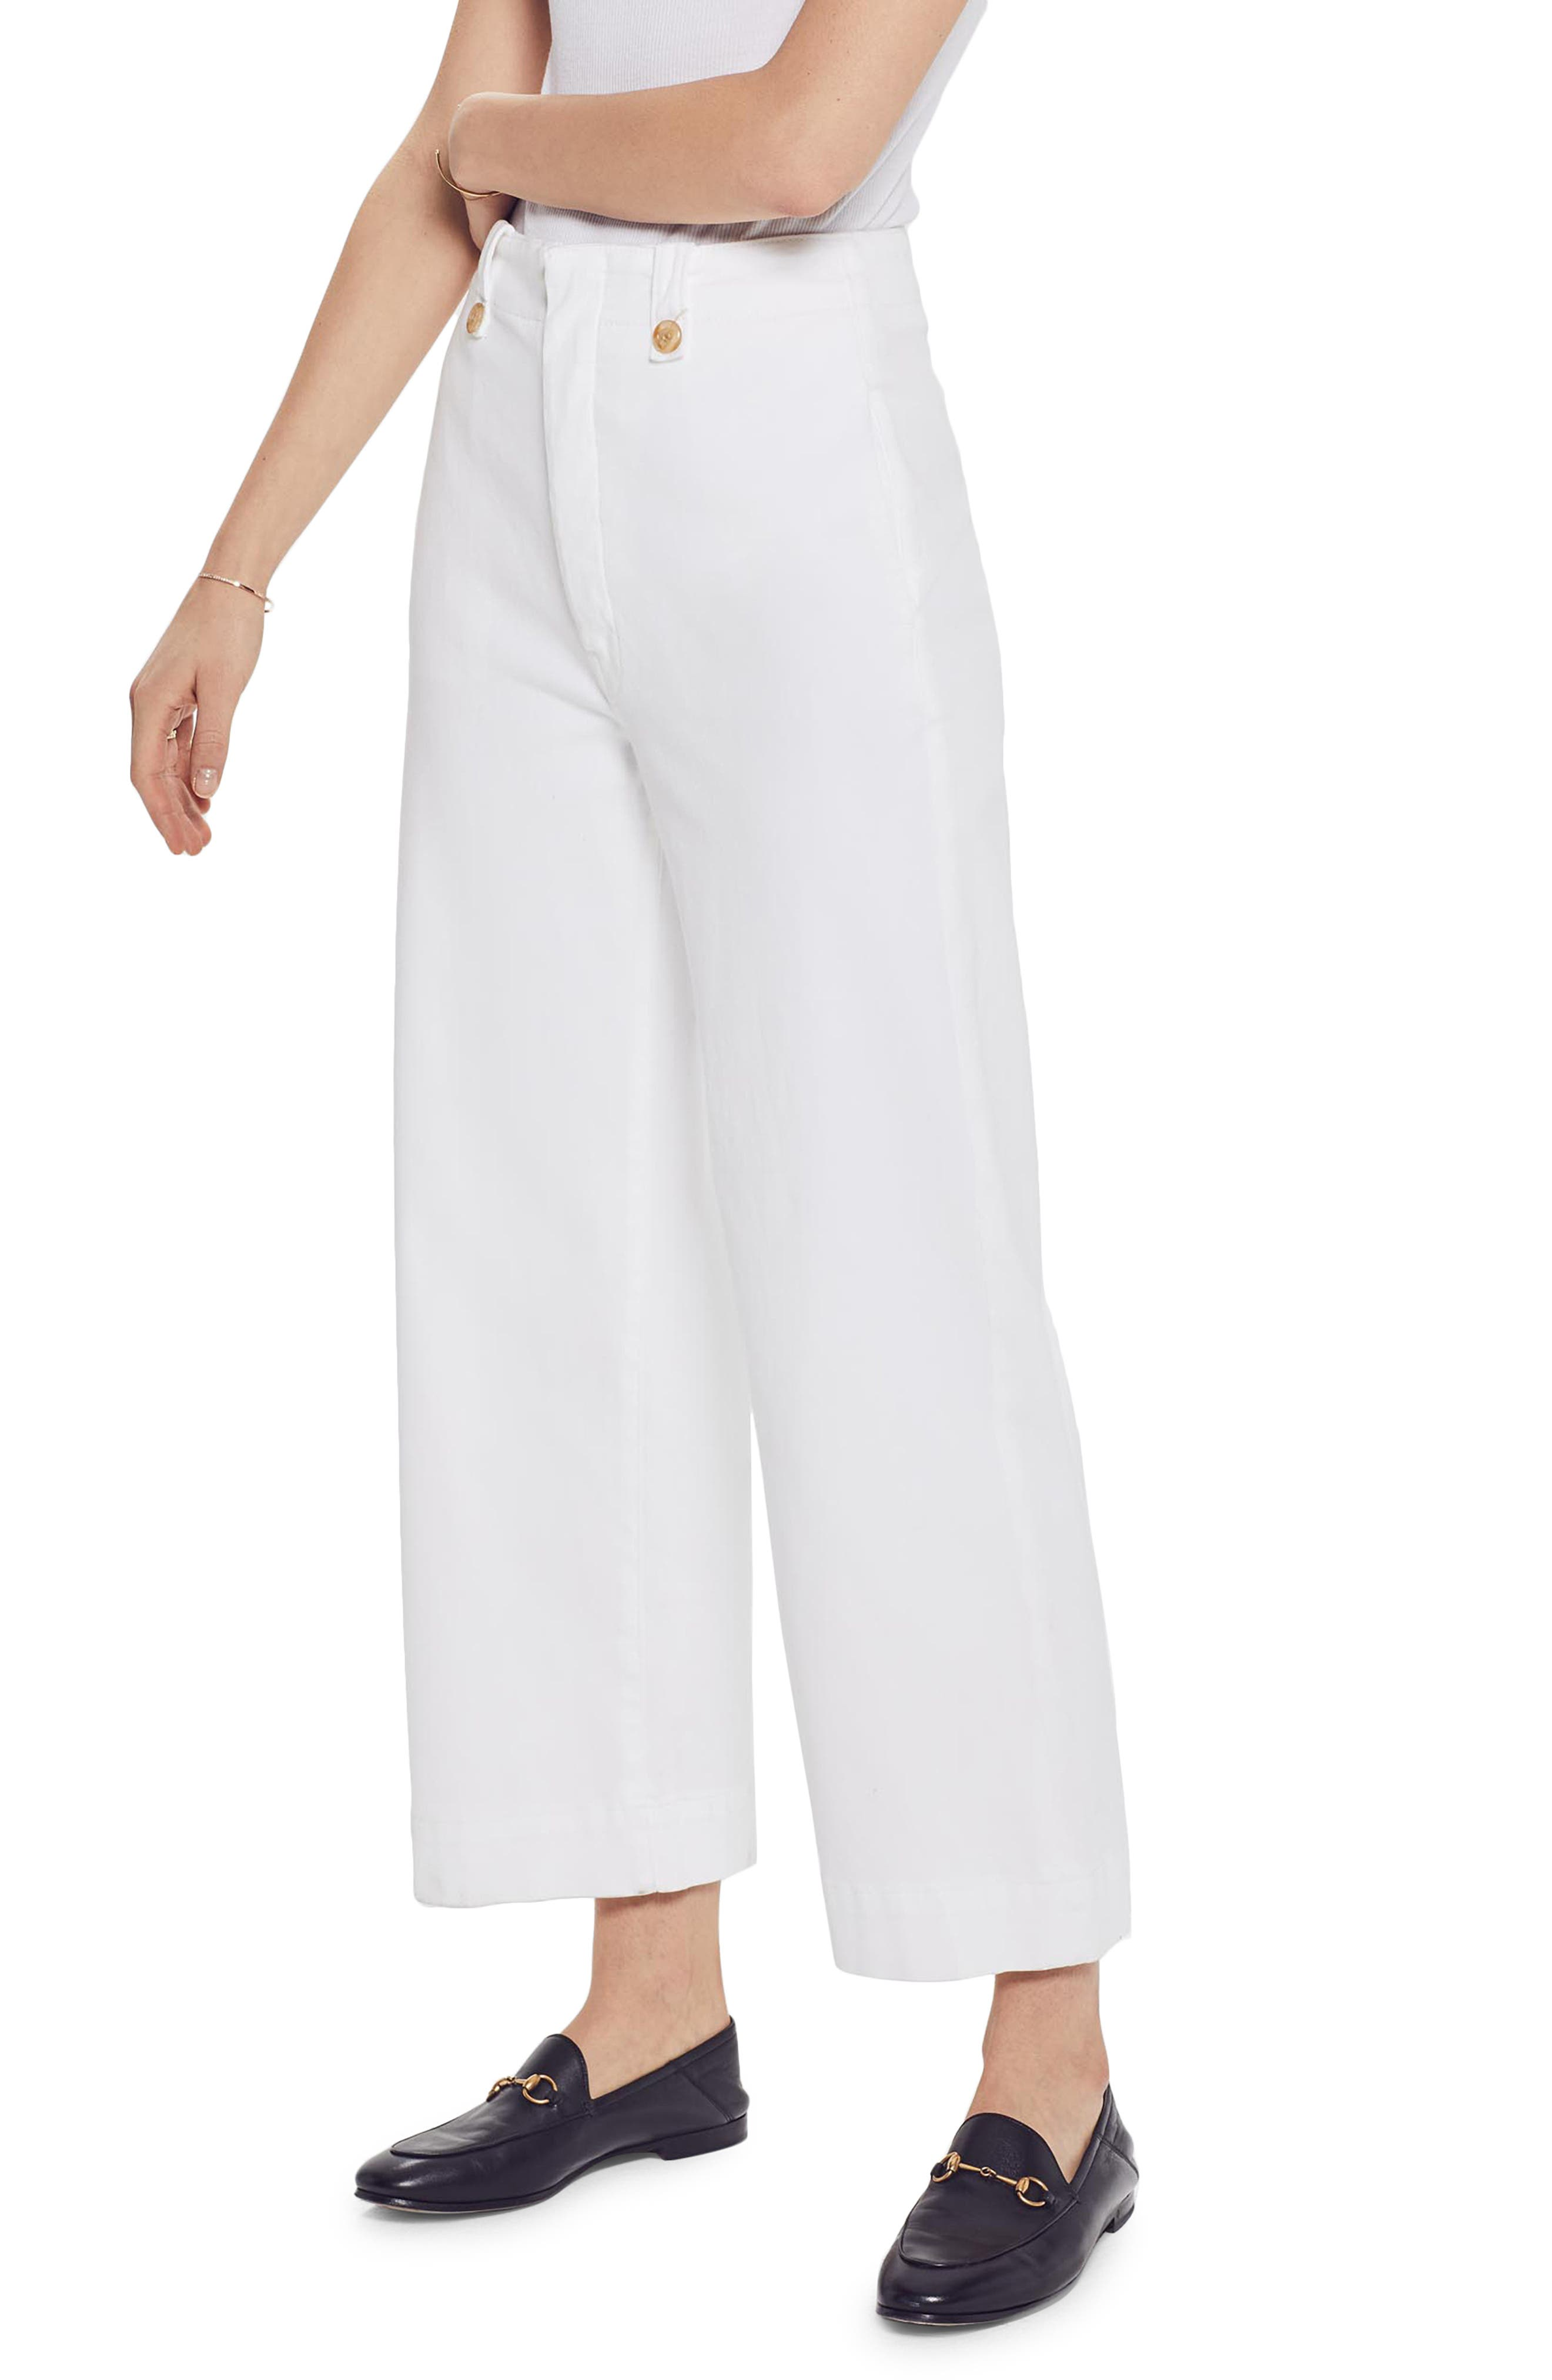 MOTHER The Greaser Crop Wide Leg Jeans, Main, color, GLASS SLIPPER